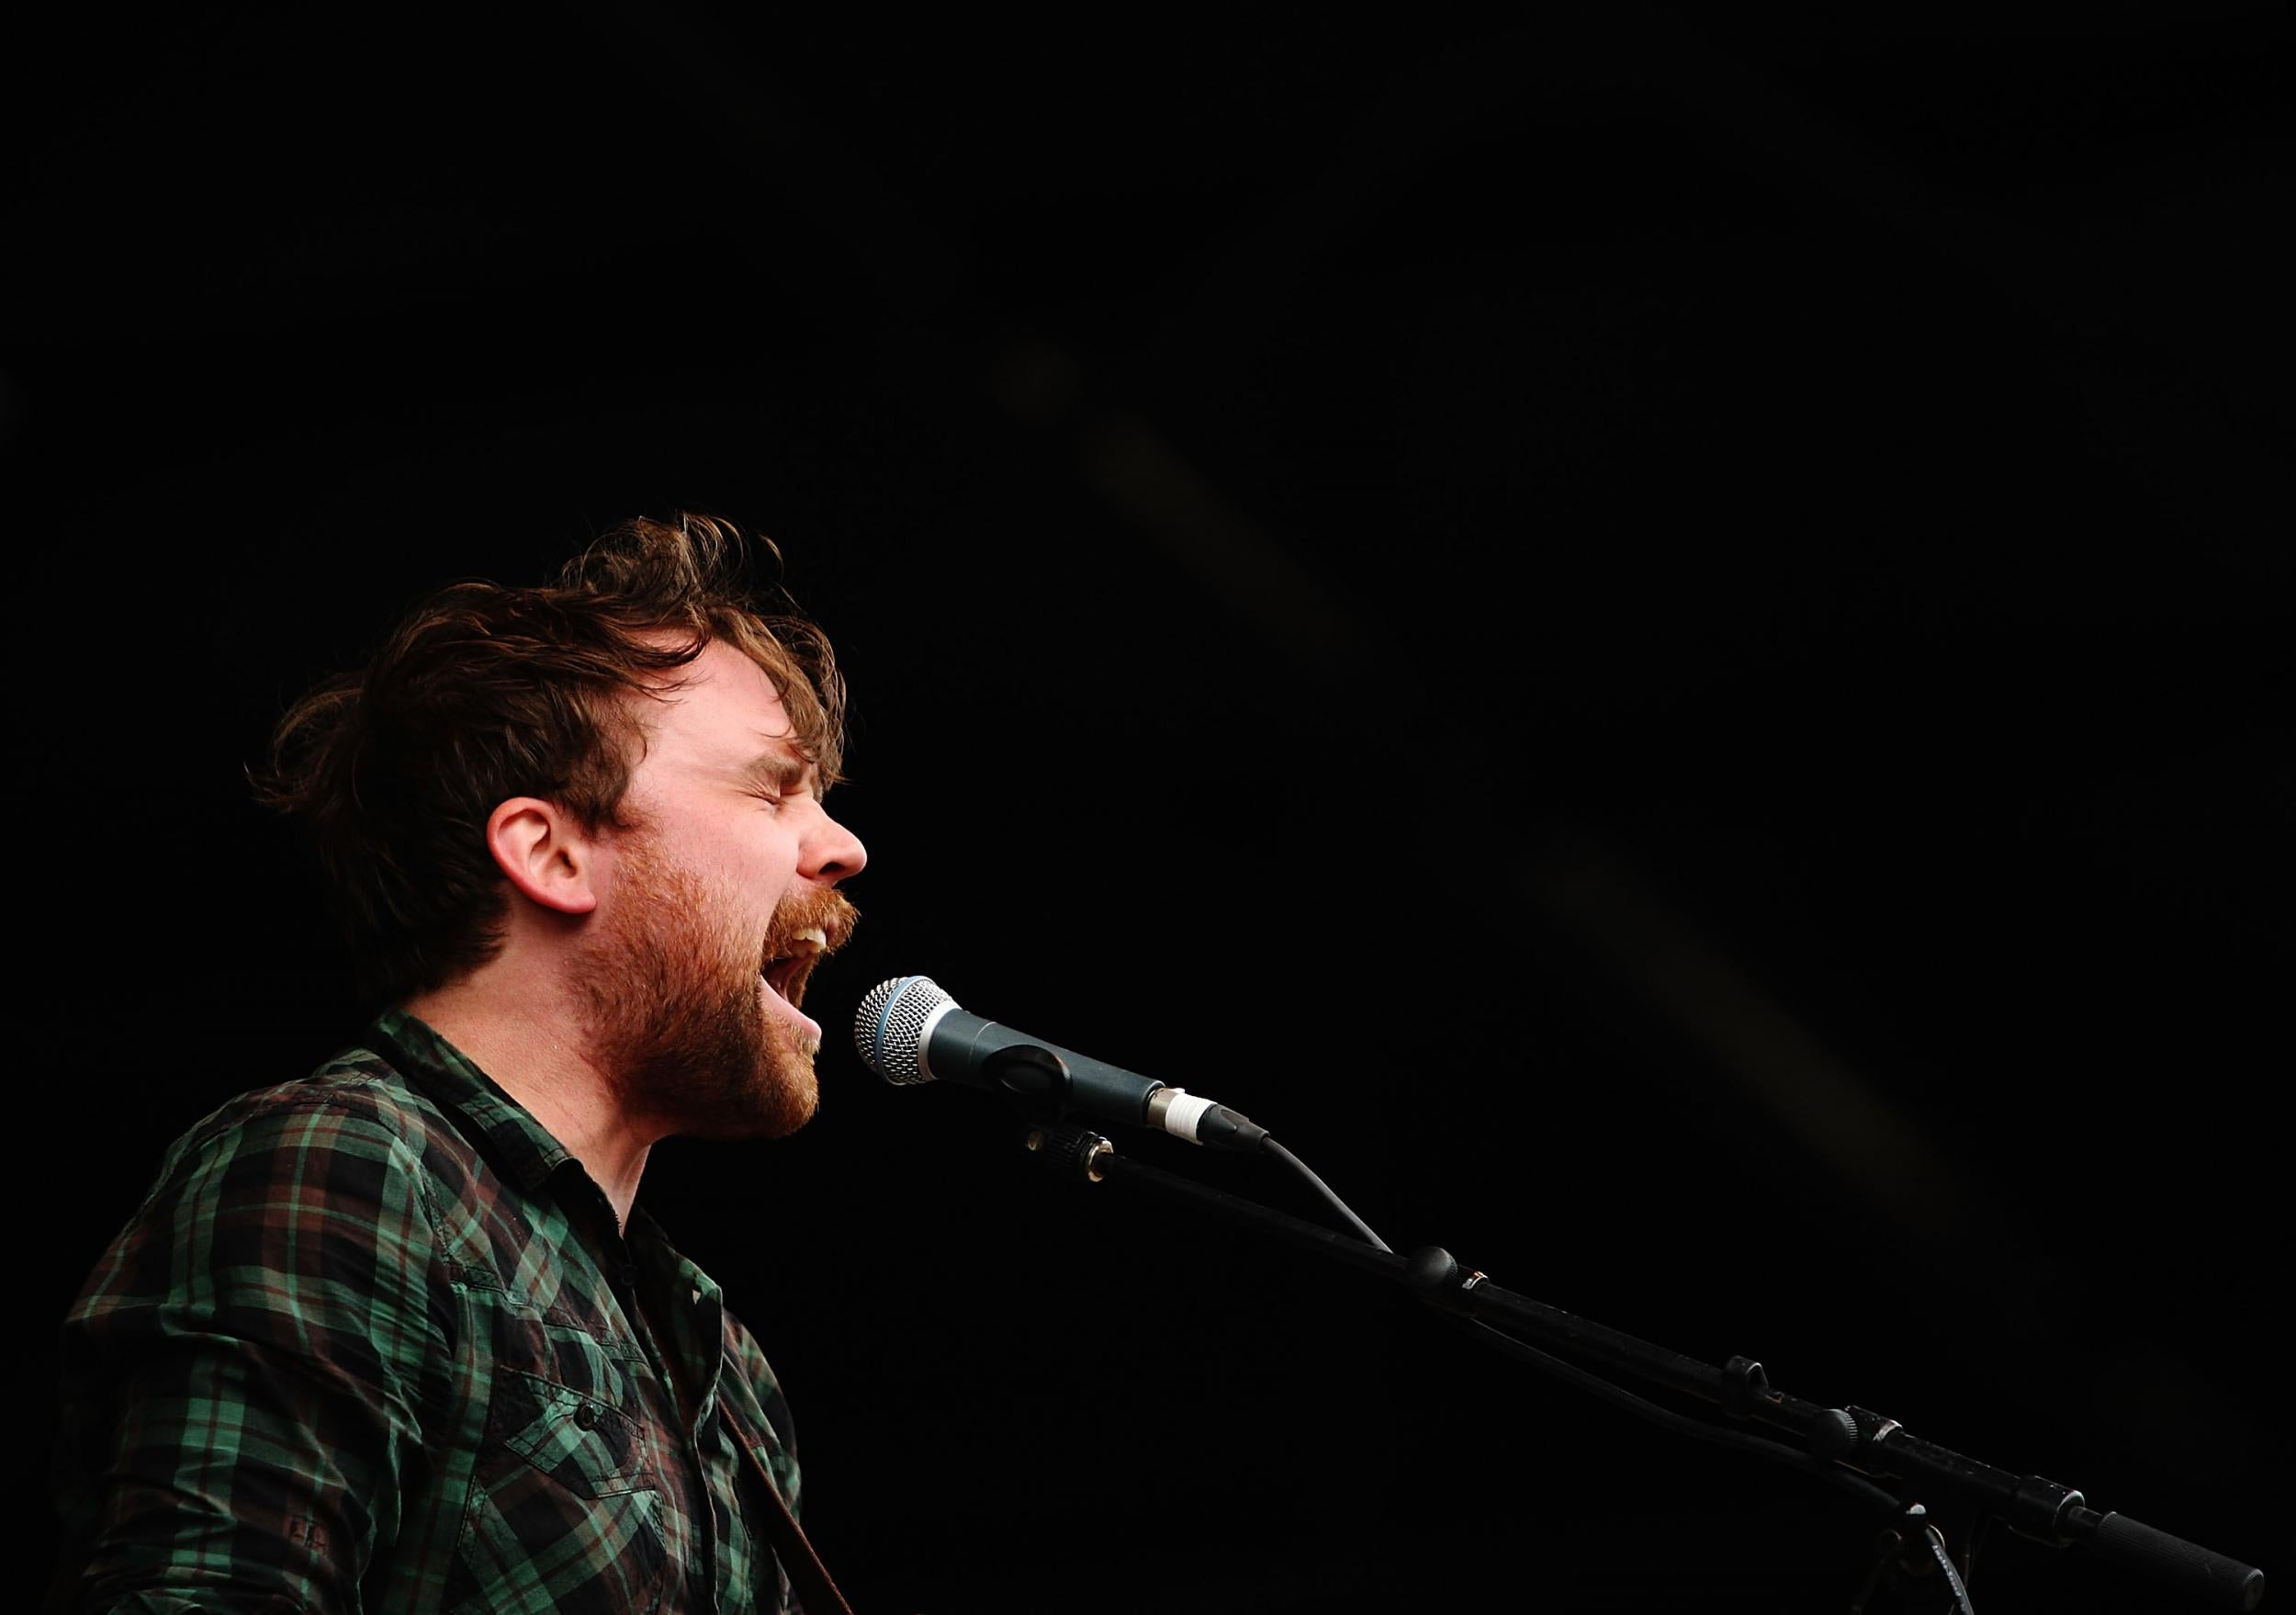 Scott Hutchison death: The late Frightened Rabbit frontman's 10 best